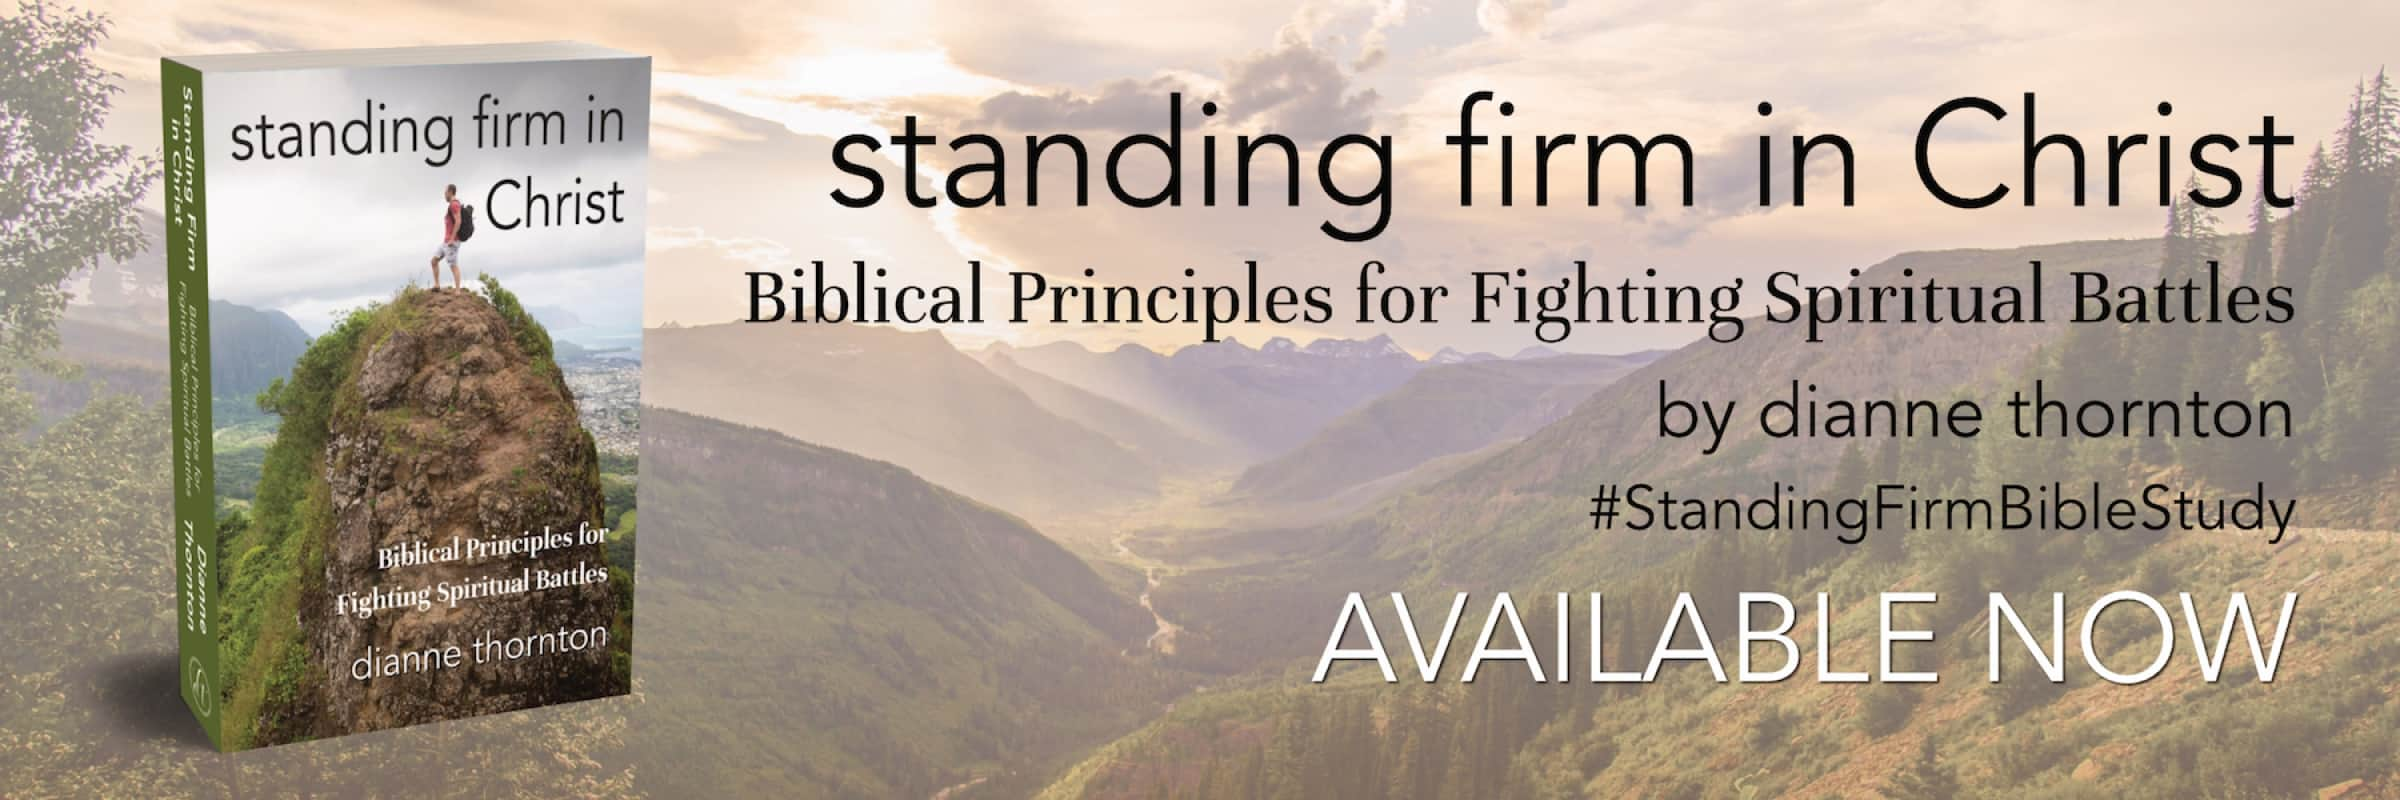 Standing Firm in Christ: Biblical Principles for Fighting Spiritual Battles, by Dianne Thornton, Available Now